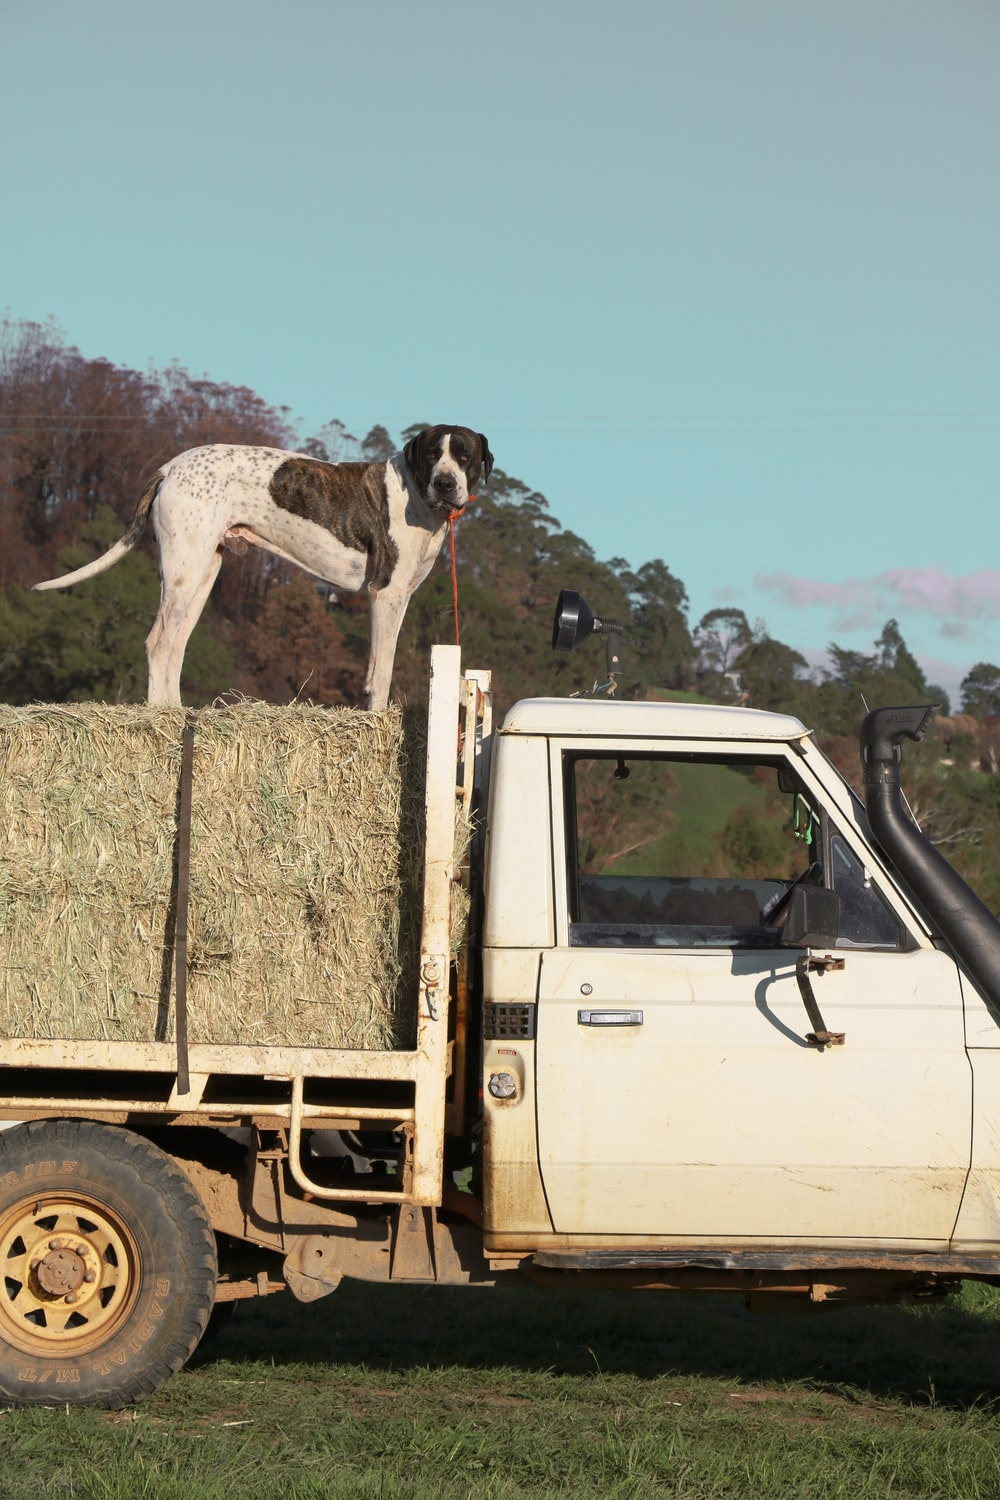 white and black short coated dog on brown truck during daytime